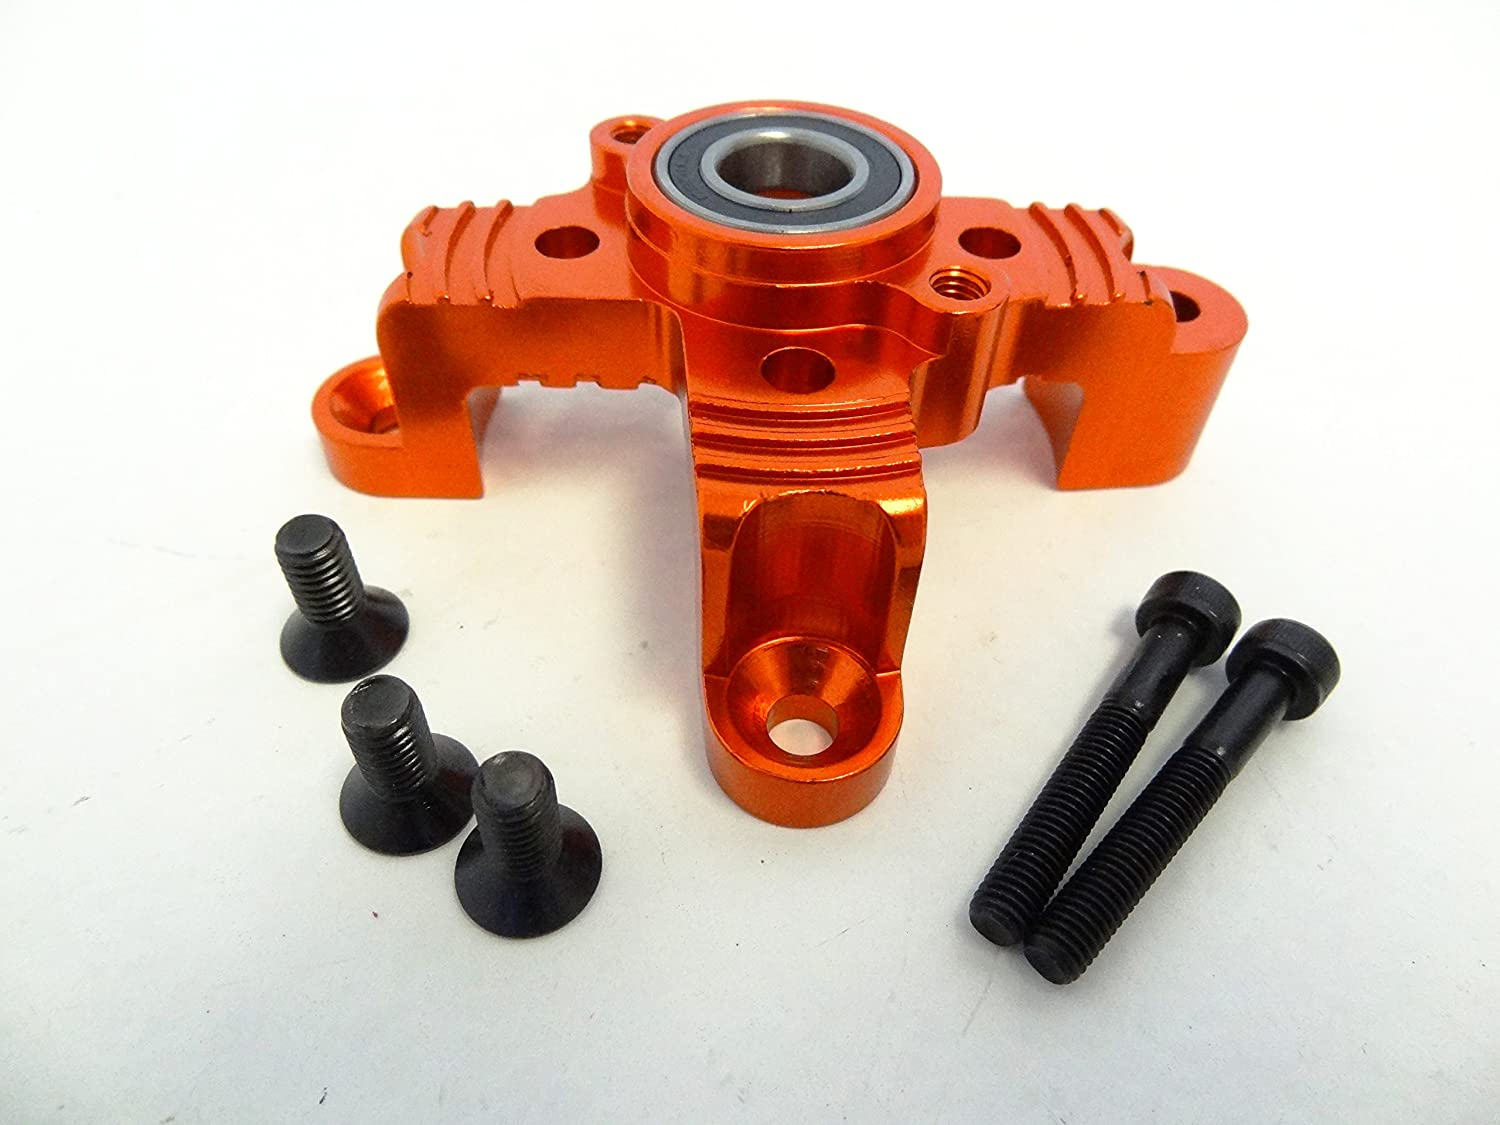 1/5 Scale HD Rovan RC Aluminum Clutch Brace Fits HPI Baja 5B 5T King Motor Buggy Rovan Sports